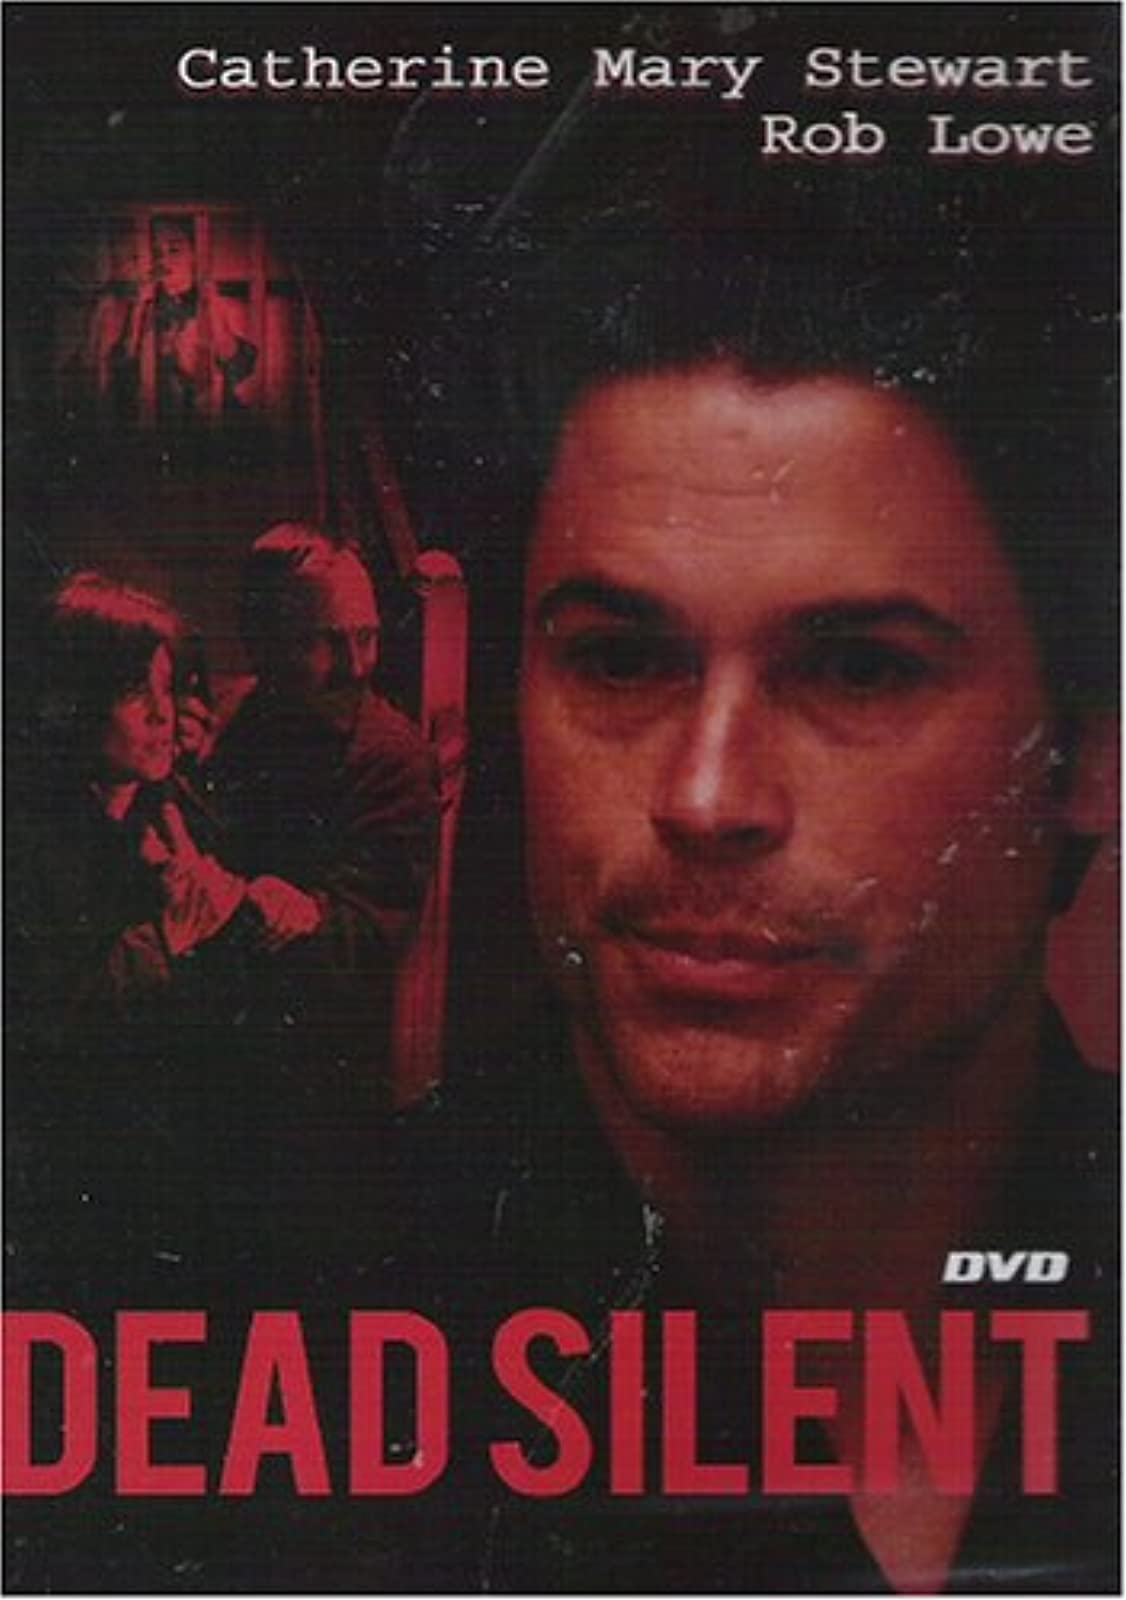 Dead Silent On DVD with Rob Lowe Mystery